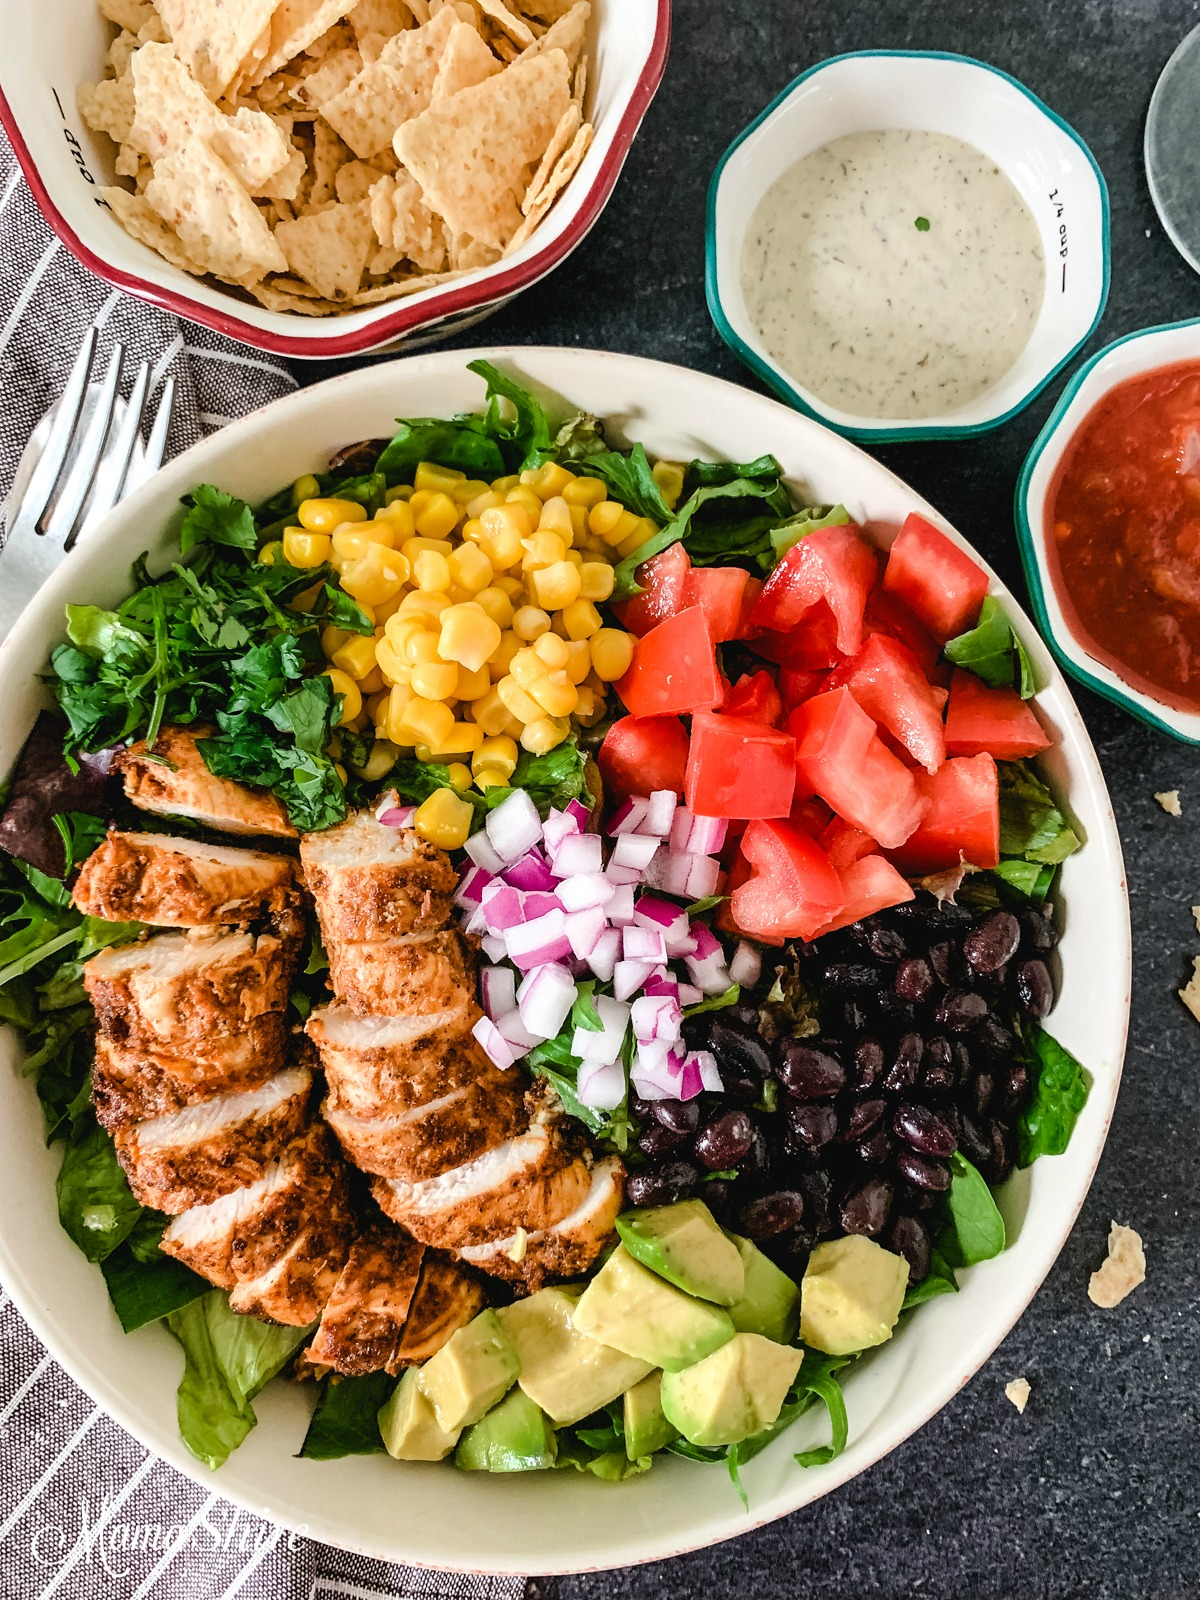 A colorful platter of taco salad with chicken made with black beans and corn.